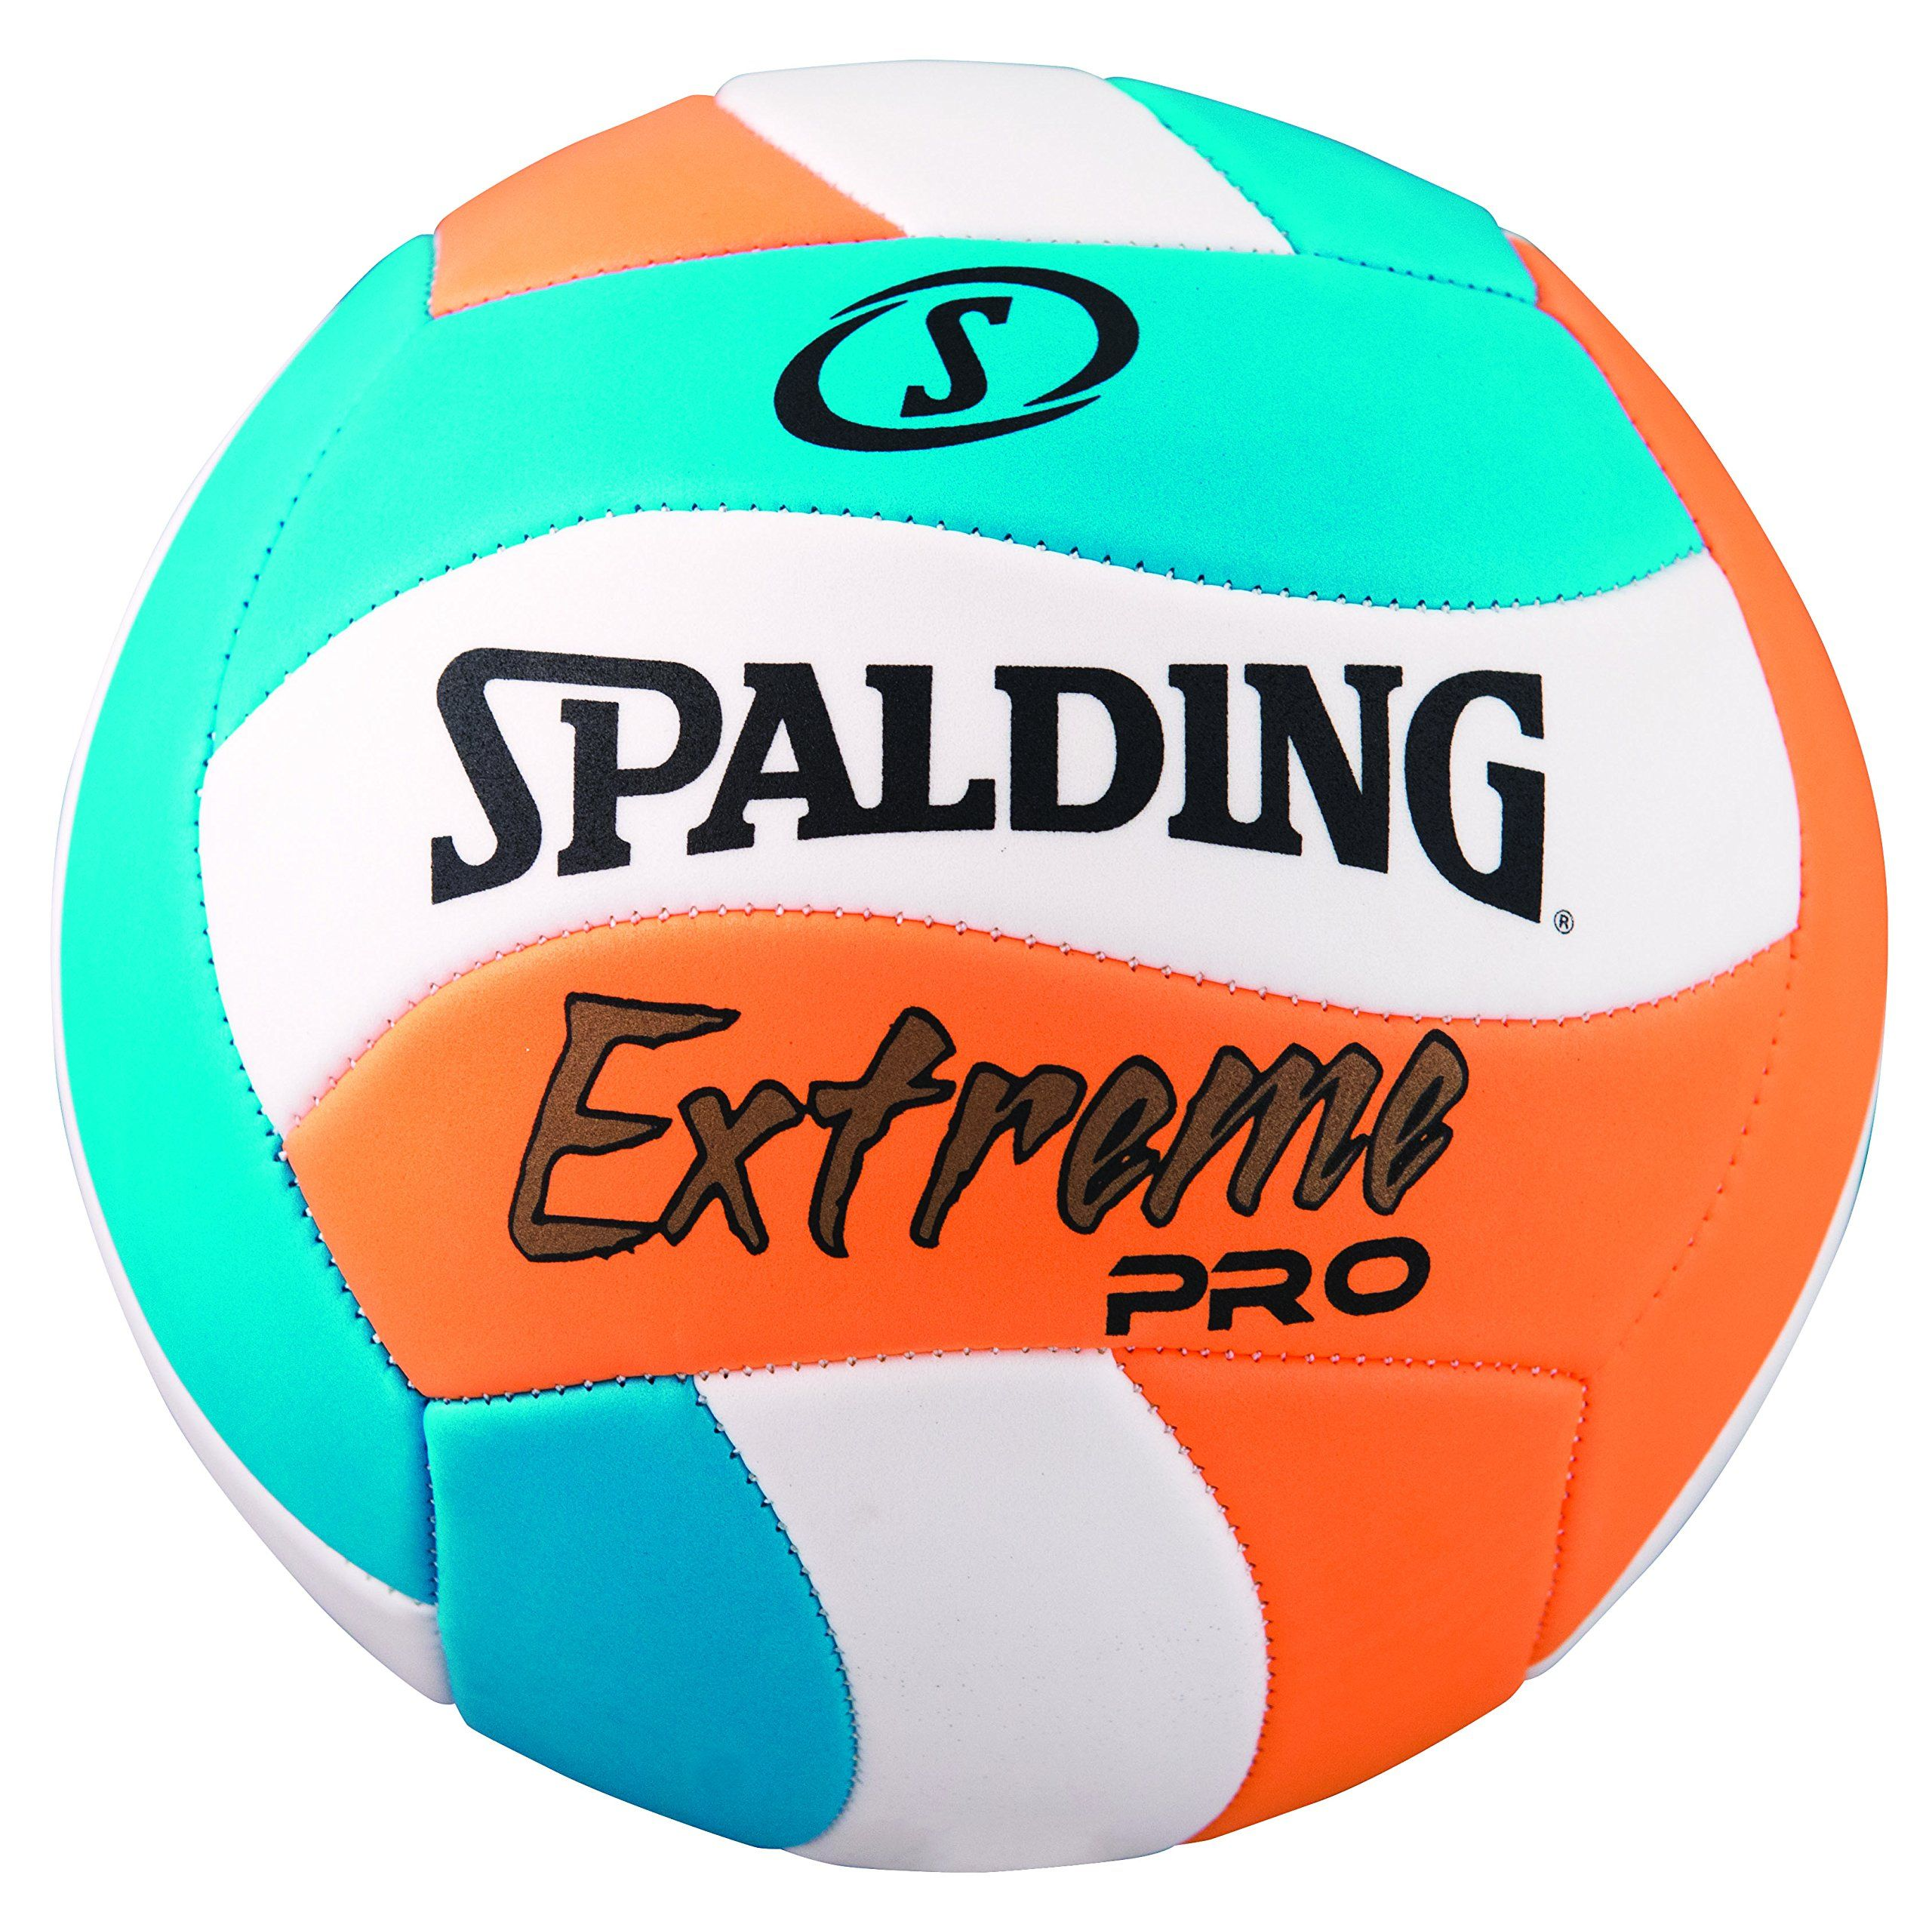 Spalding Extreme Pro Wave Volleyball Blue Orange Official Size Machine Stitched Tpe Cover With Wave Panel Design Official S Volleyballs Spalding Volleyball